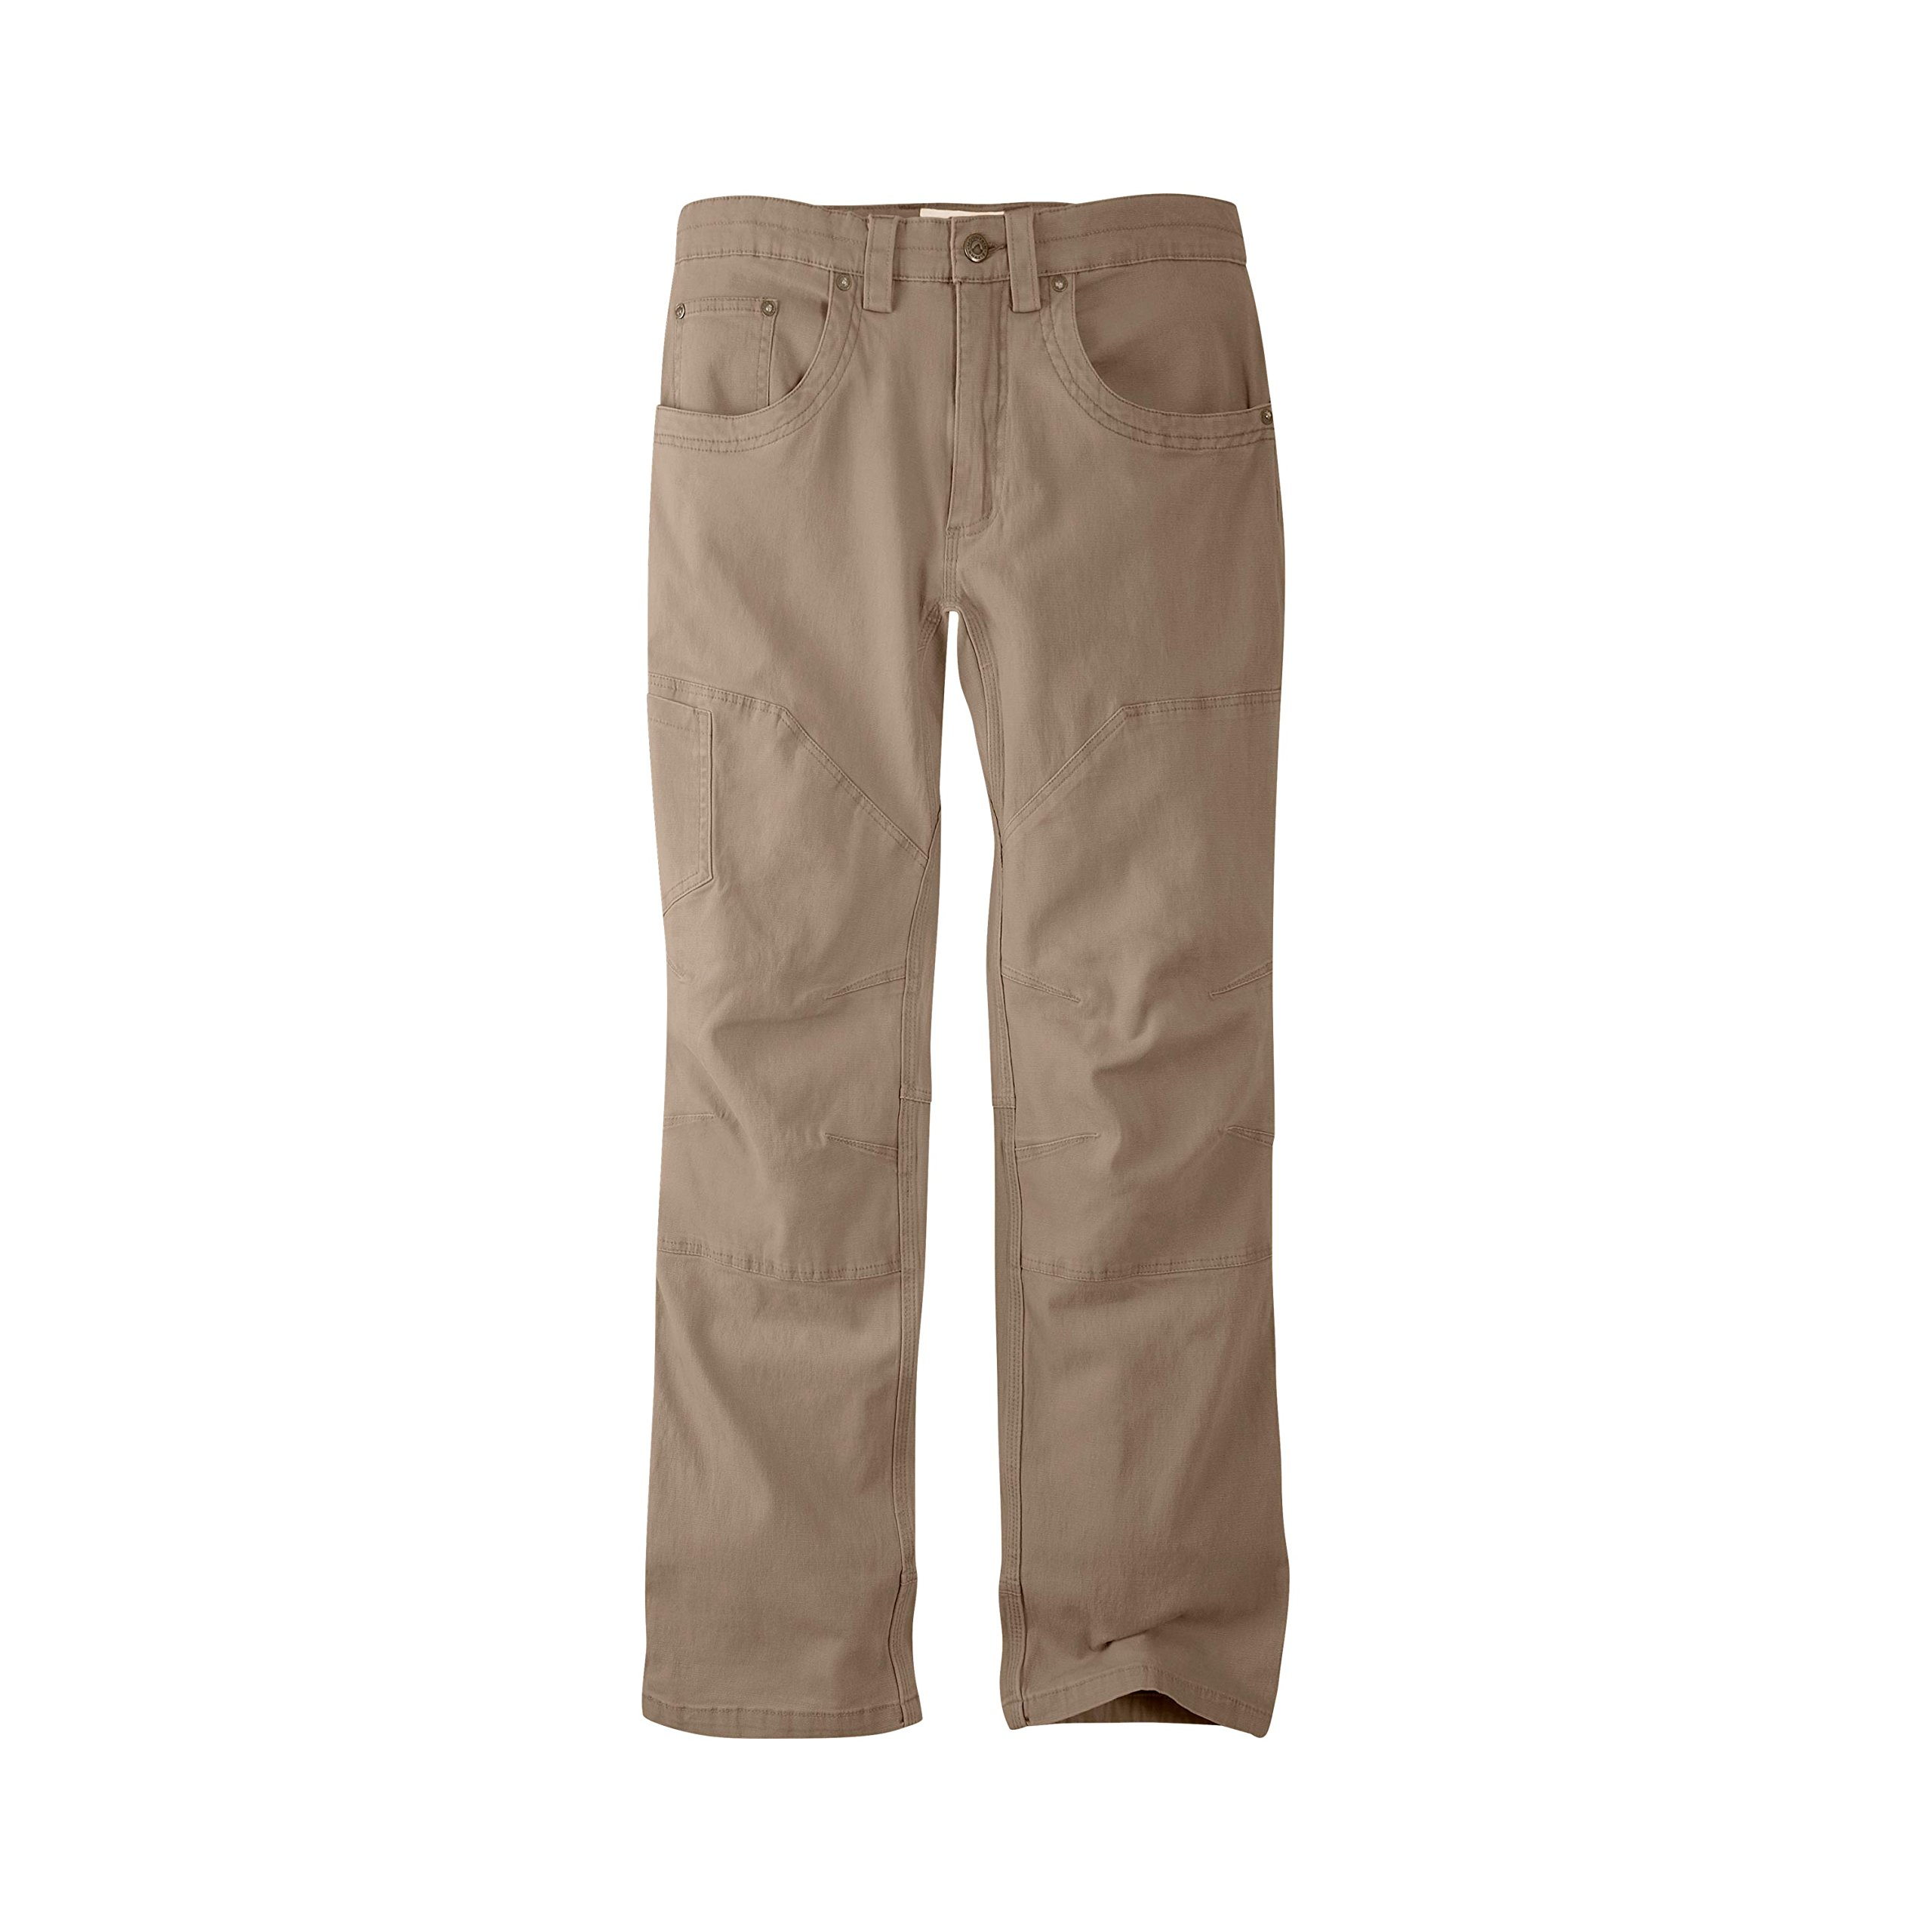 Mountain Khakis Men's Camber 107 Pant Classic Fit, Classic Khaki, 34W 32L by Mountain Khakis